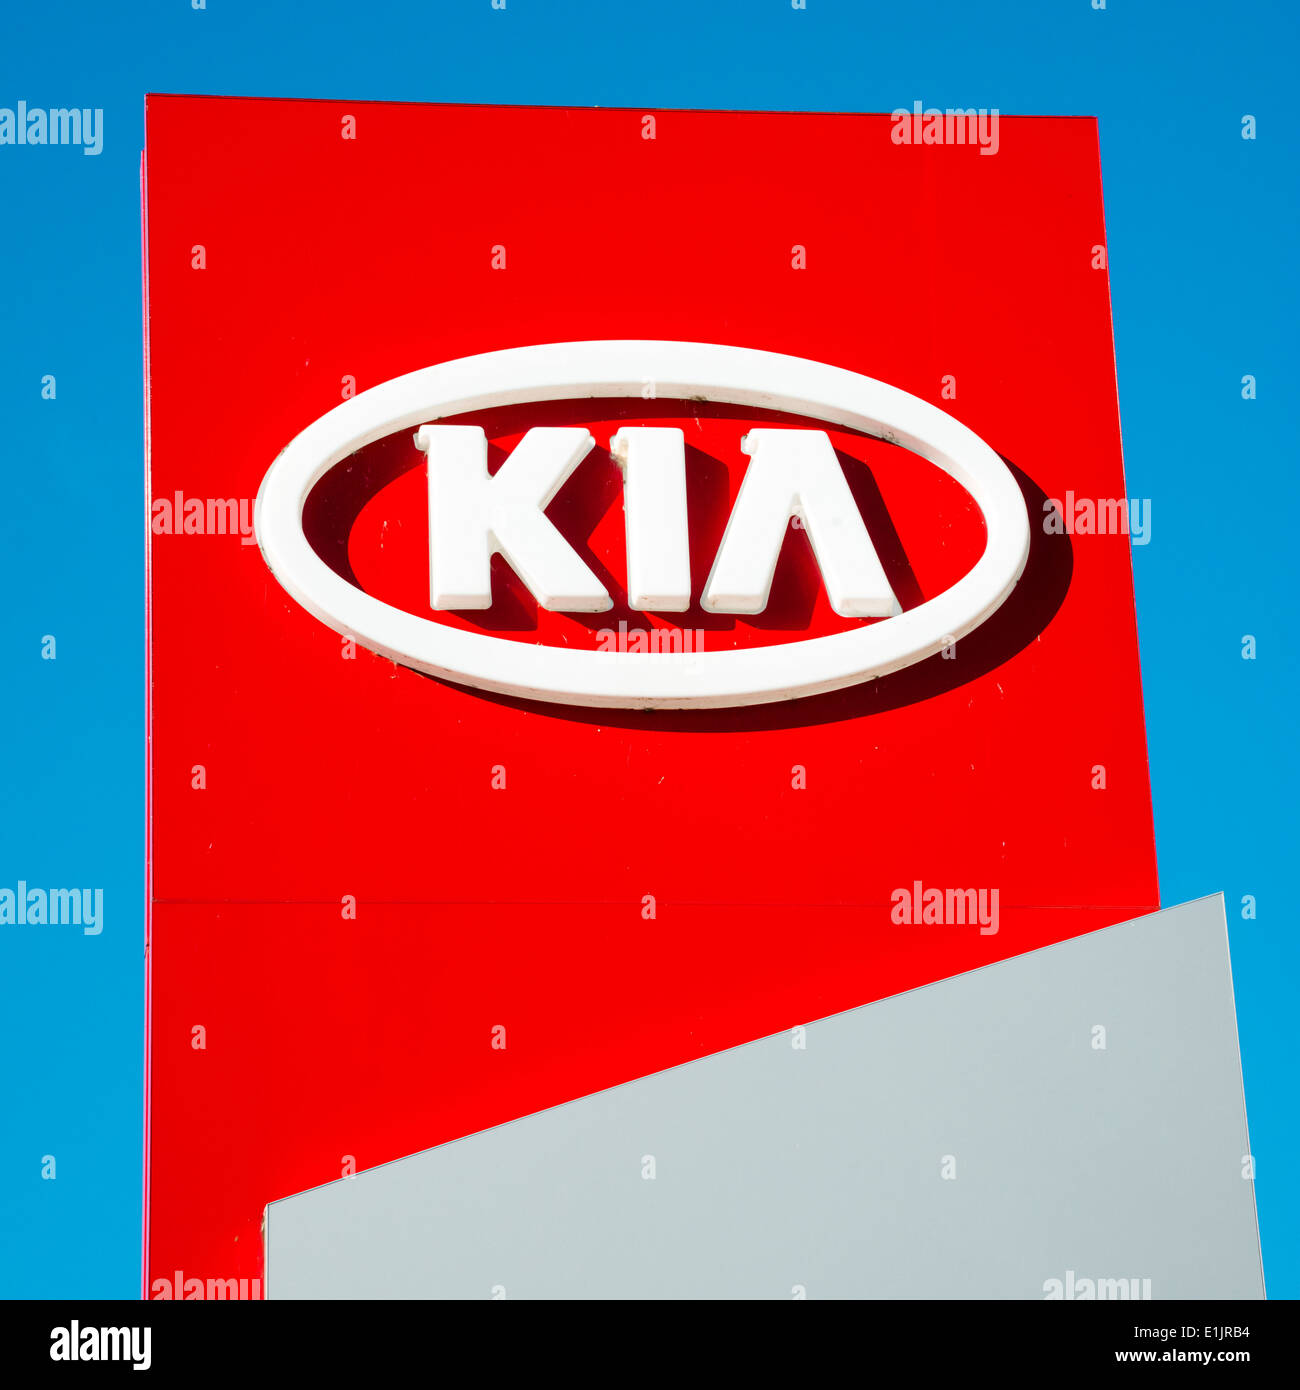 Kia motors sign at a car dealership, UK. Stock Photo